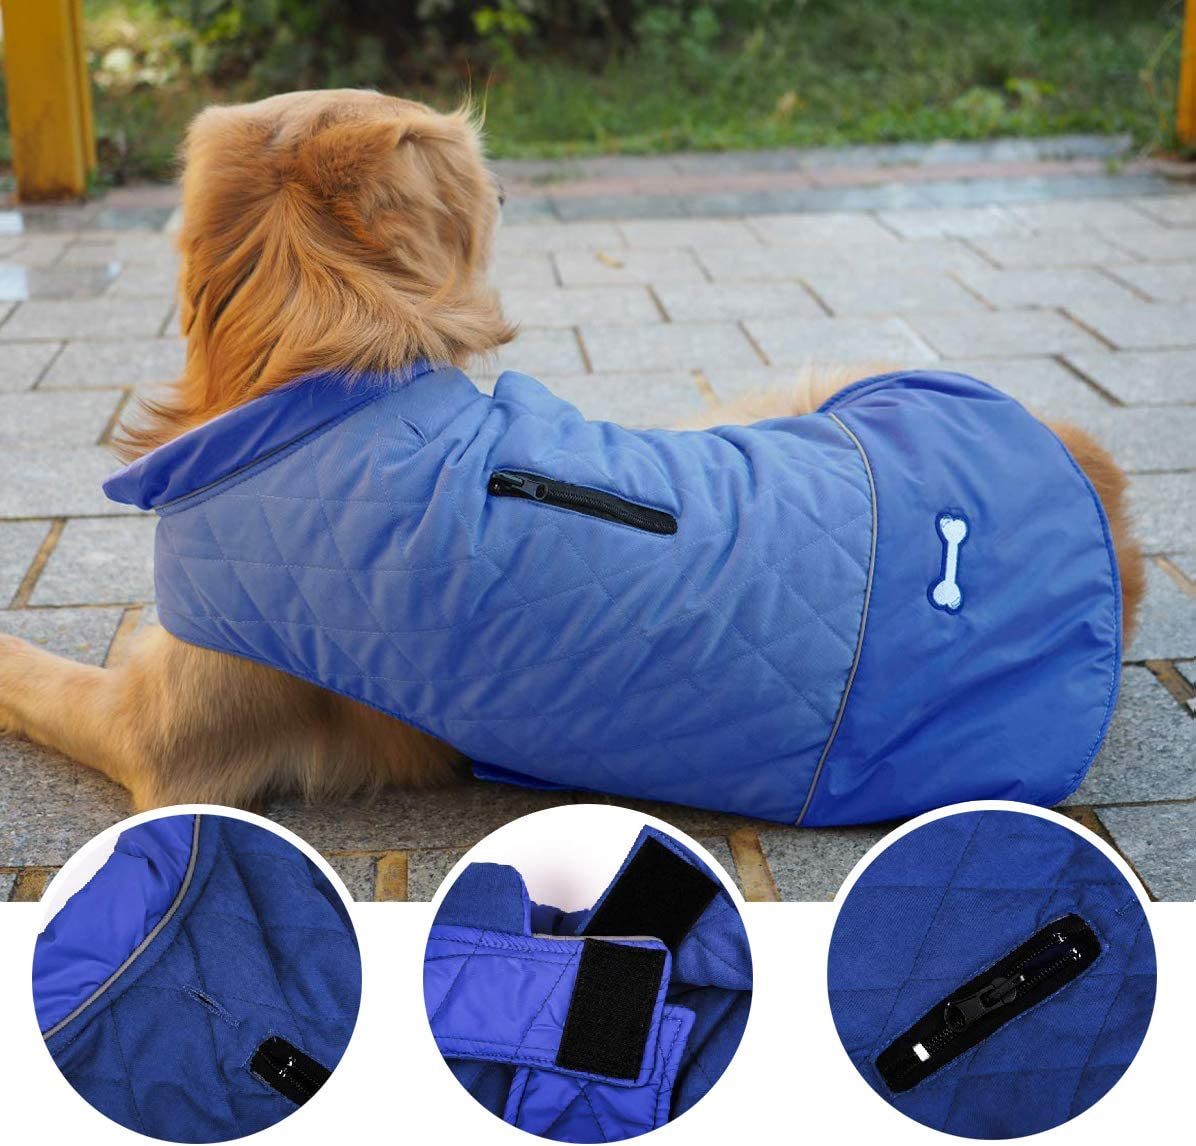 Withu Pet Dog Coat Cozy Windproof Cold Winter Reversible Warm Vest Jacket Outfits Apparels for Small Puppy Medium Large Dogs Red M